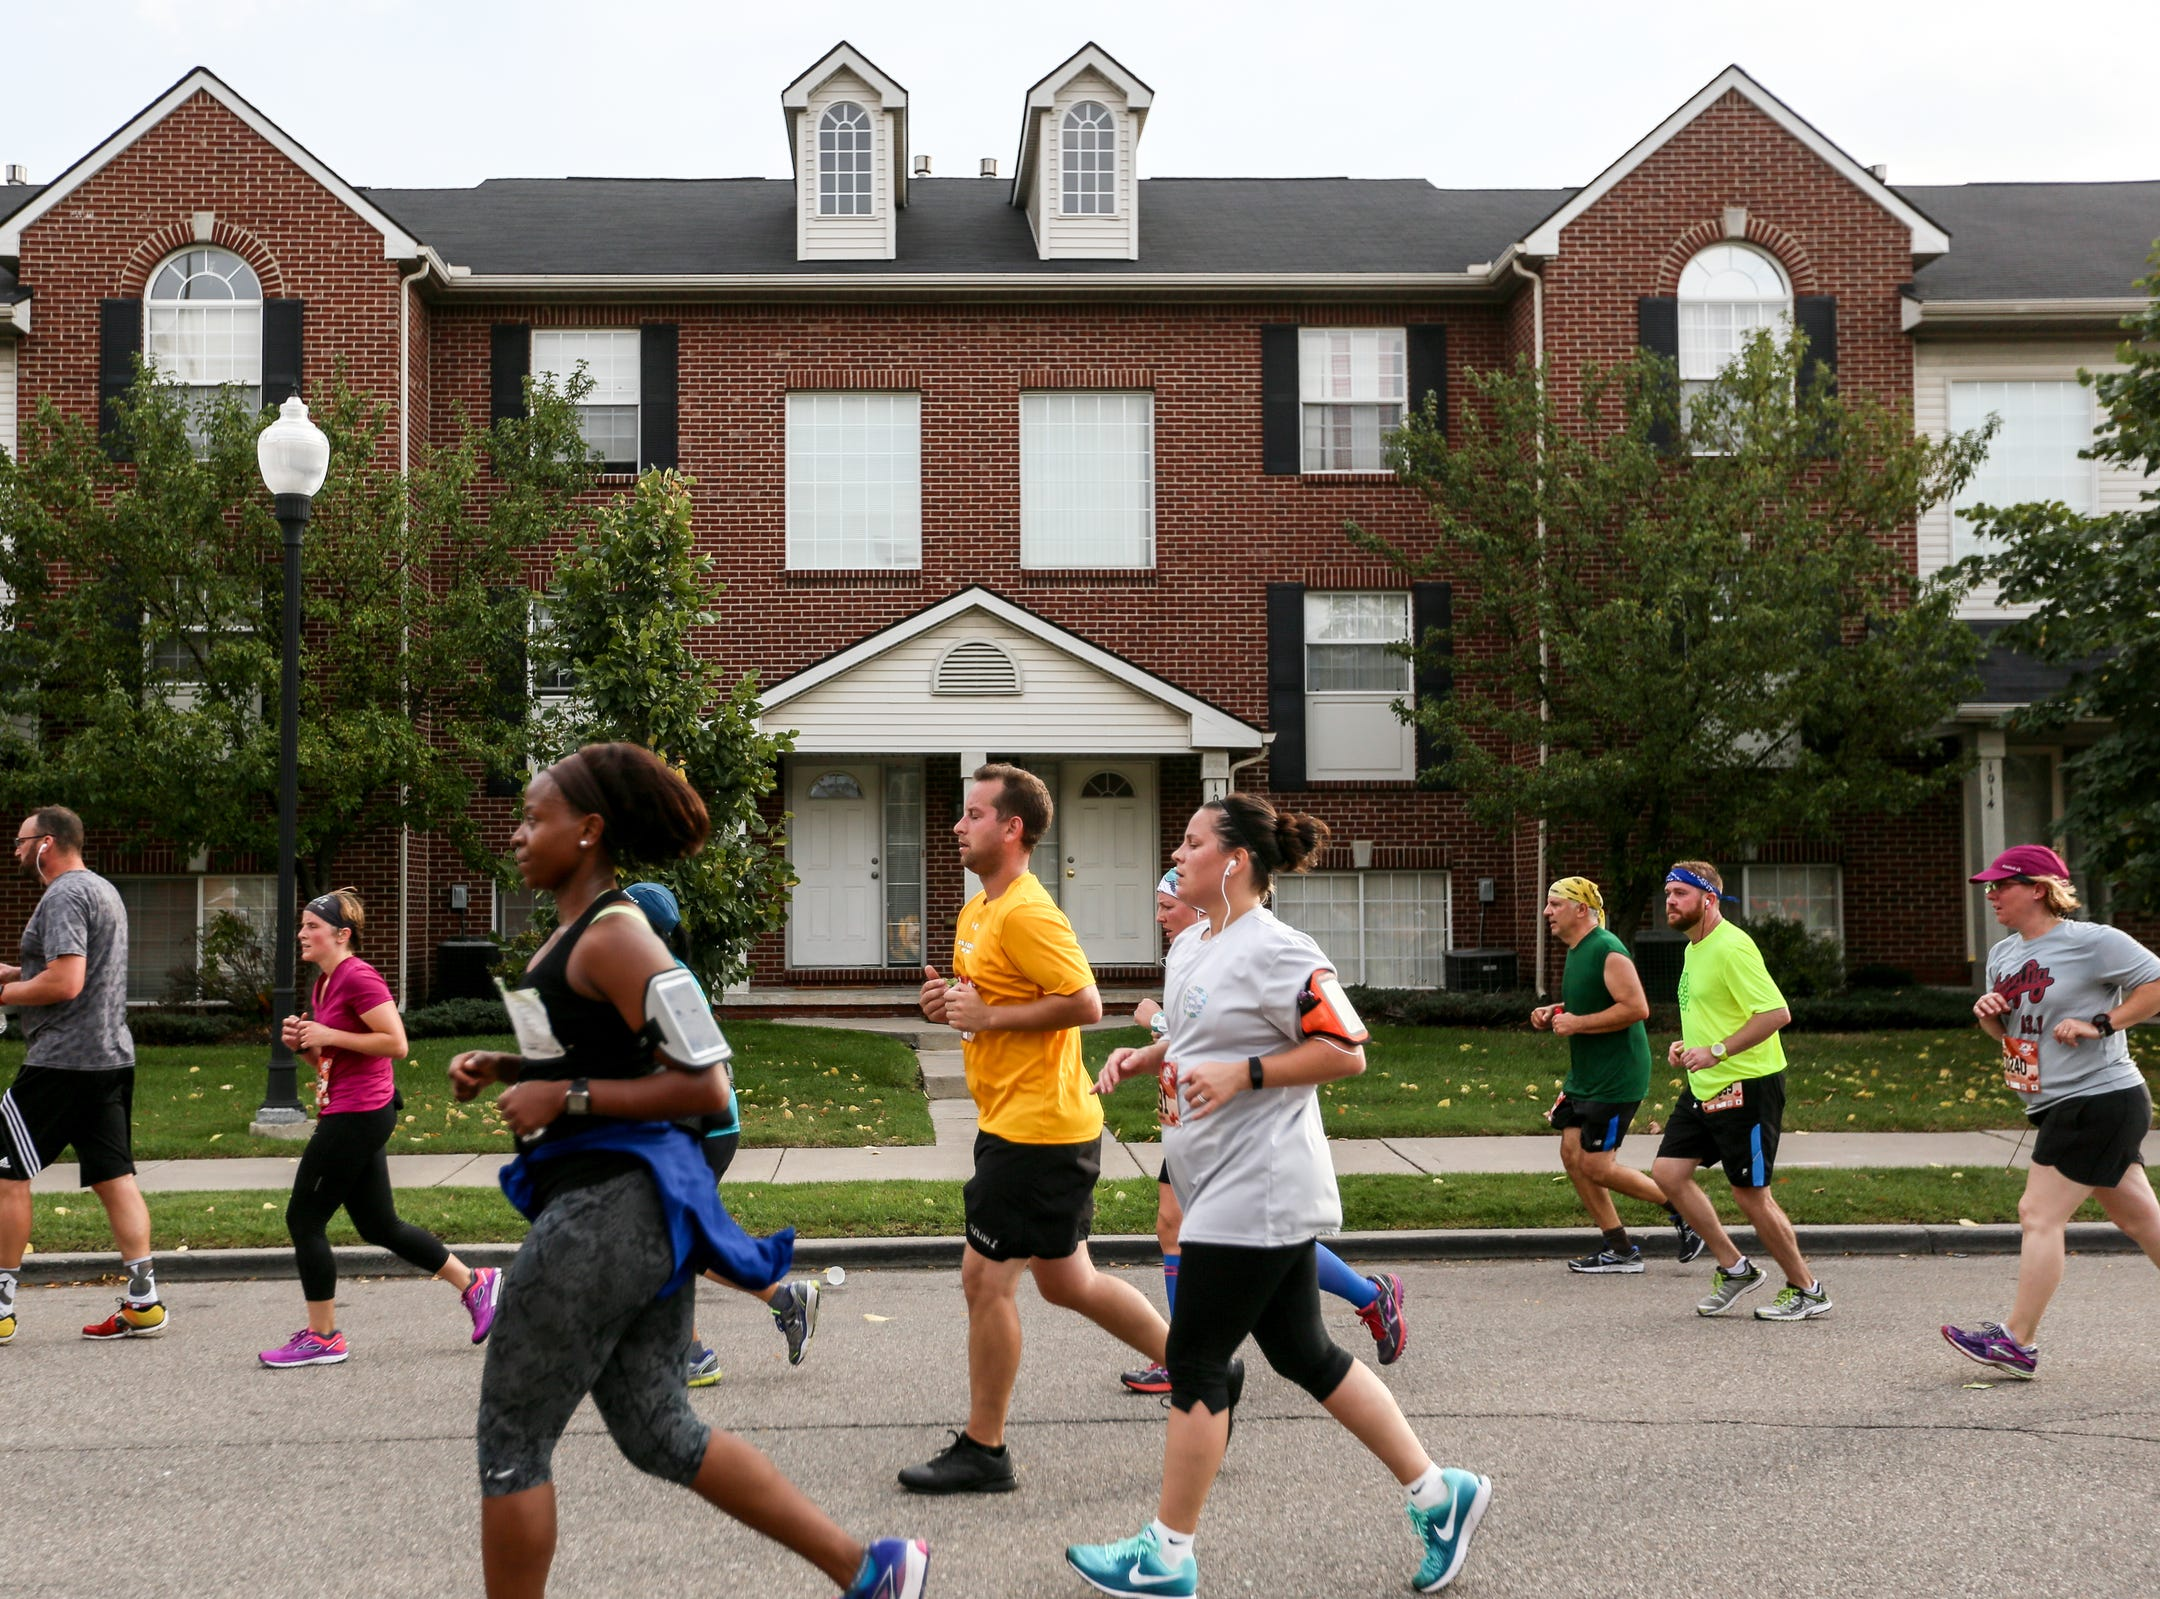 Runners pass by condos in Mexicantown during the 40th Annual Detroit Free Press/Chemical Bank Marathon in Detroit on Sunday, Oct. 15, 2017.